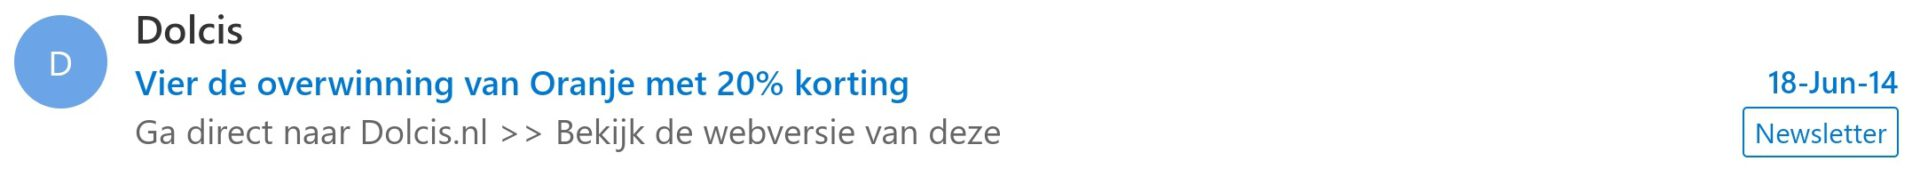 e-mail voorbeeld dolcis